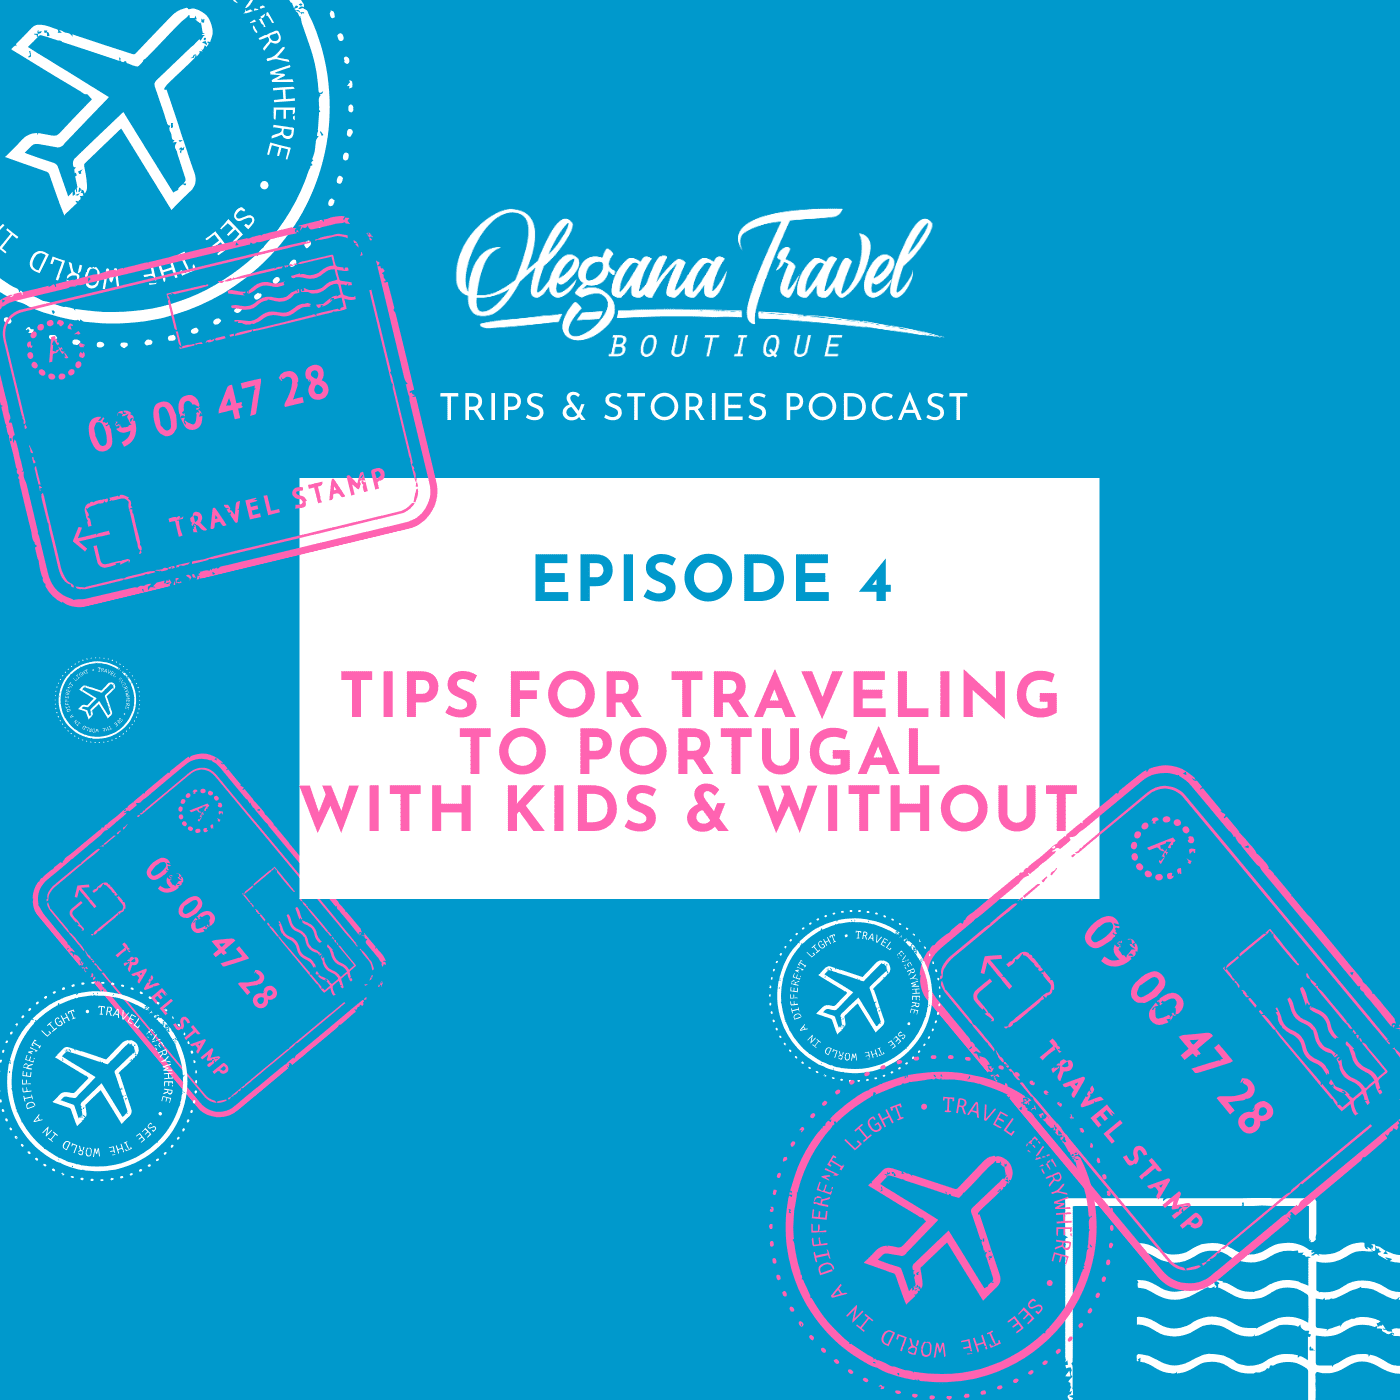 Traveling with kids to Portugal will be a breeze after you get all our travel tips for families - from the best hotels to how to avoid crowds!